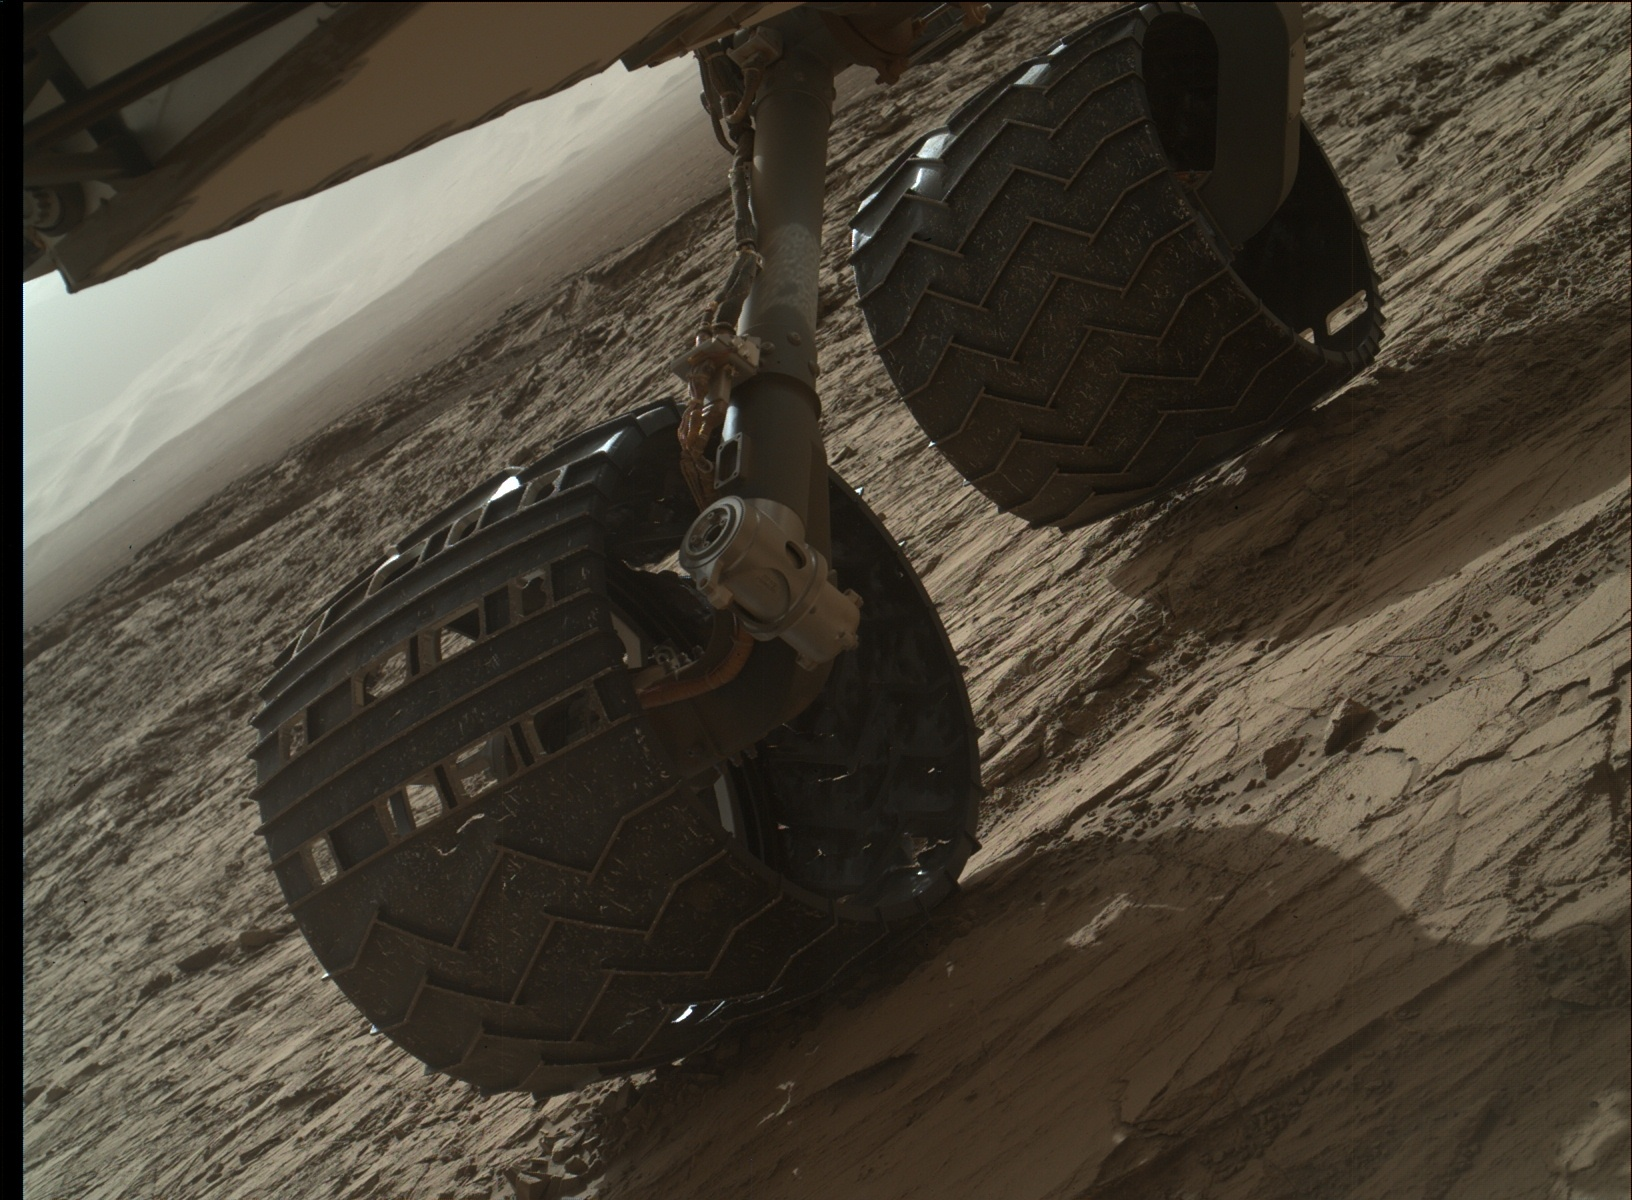 Nasa's Mars rover Curiosity acquired this image using its Mars Hand Lens Imager (MAHLI) on Sol 1260